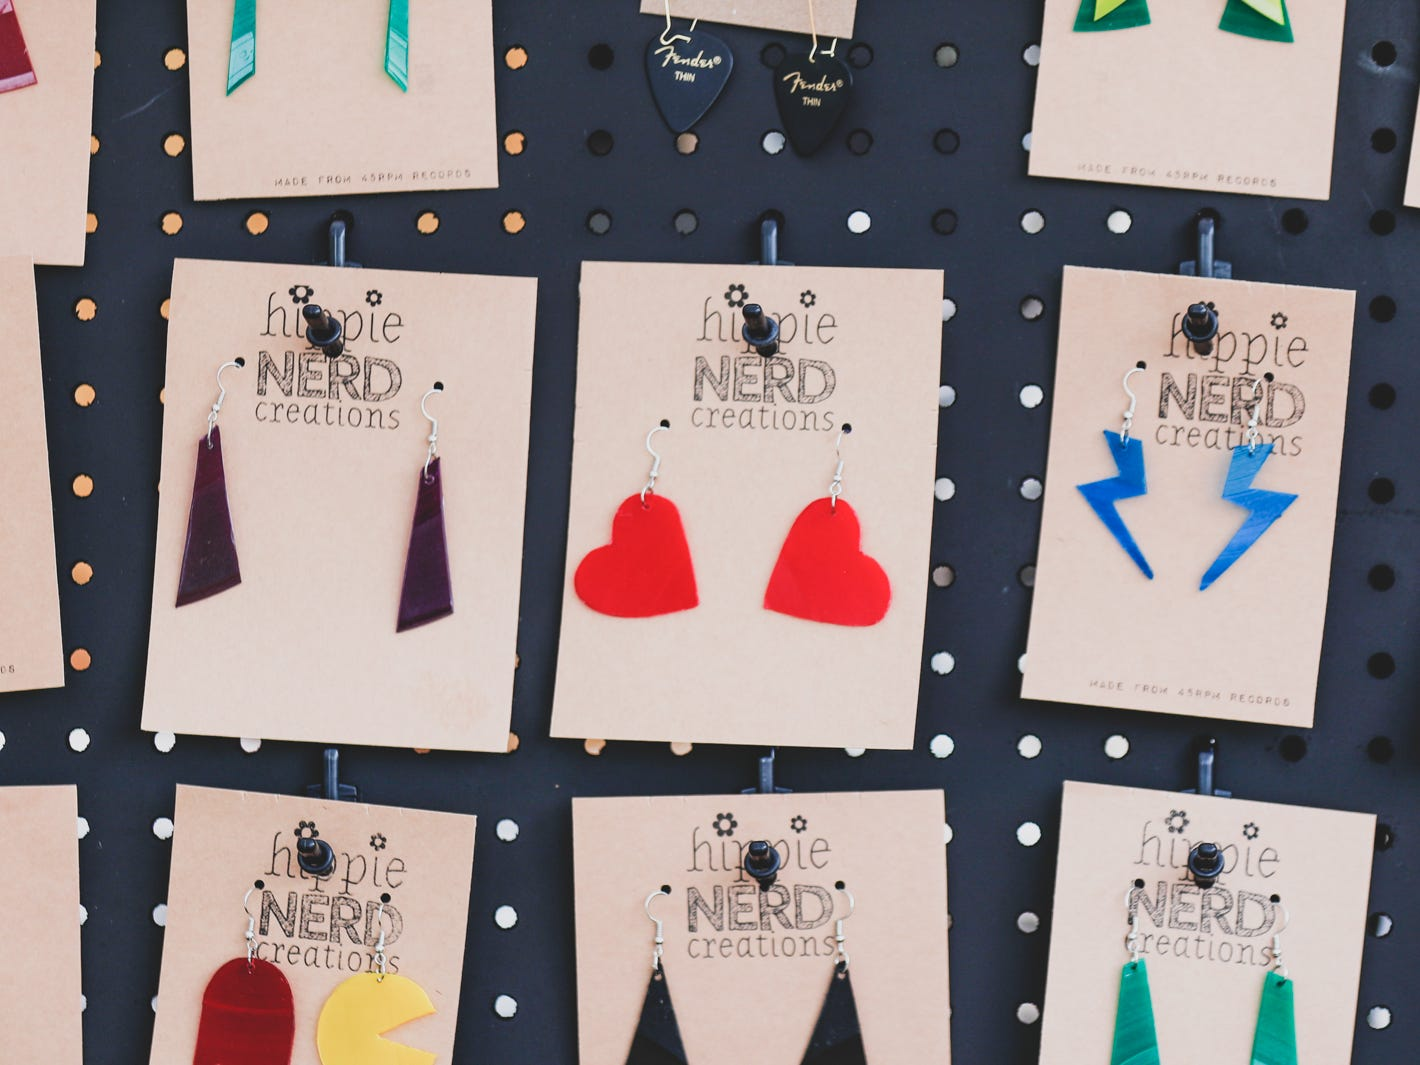 Up-cycled vinyl record earrings are sold in the Hippy Nerd Creations booth, during the Virginia Avenue Music Fest, held in Fountain Square, located in Indianapolis, on Saturday, May 11, 2019.